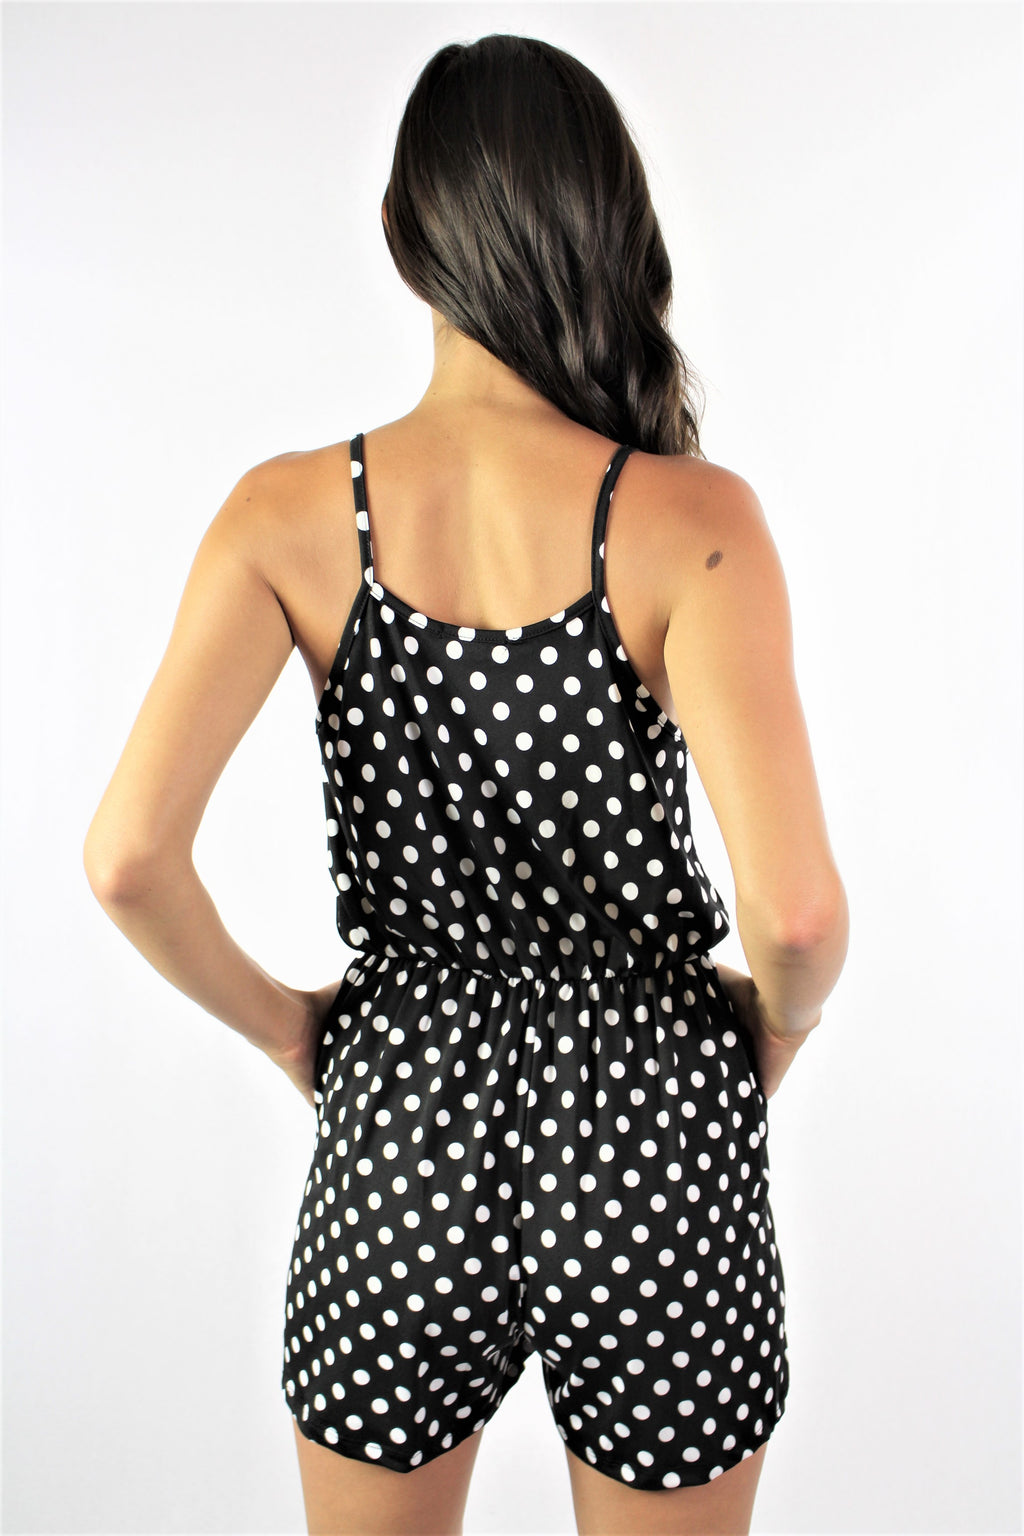 Women's Strappy Polka Dot Romper with Pockets